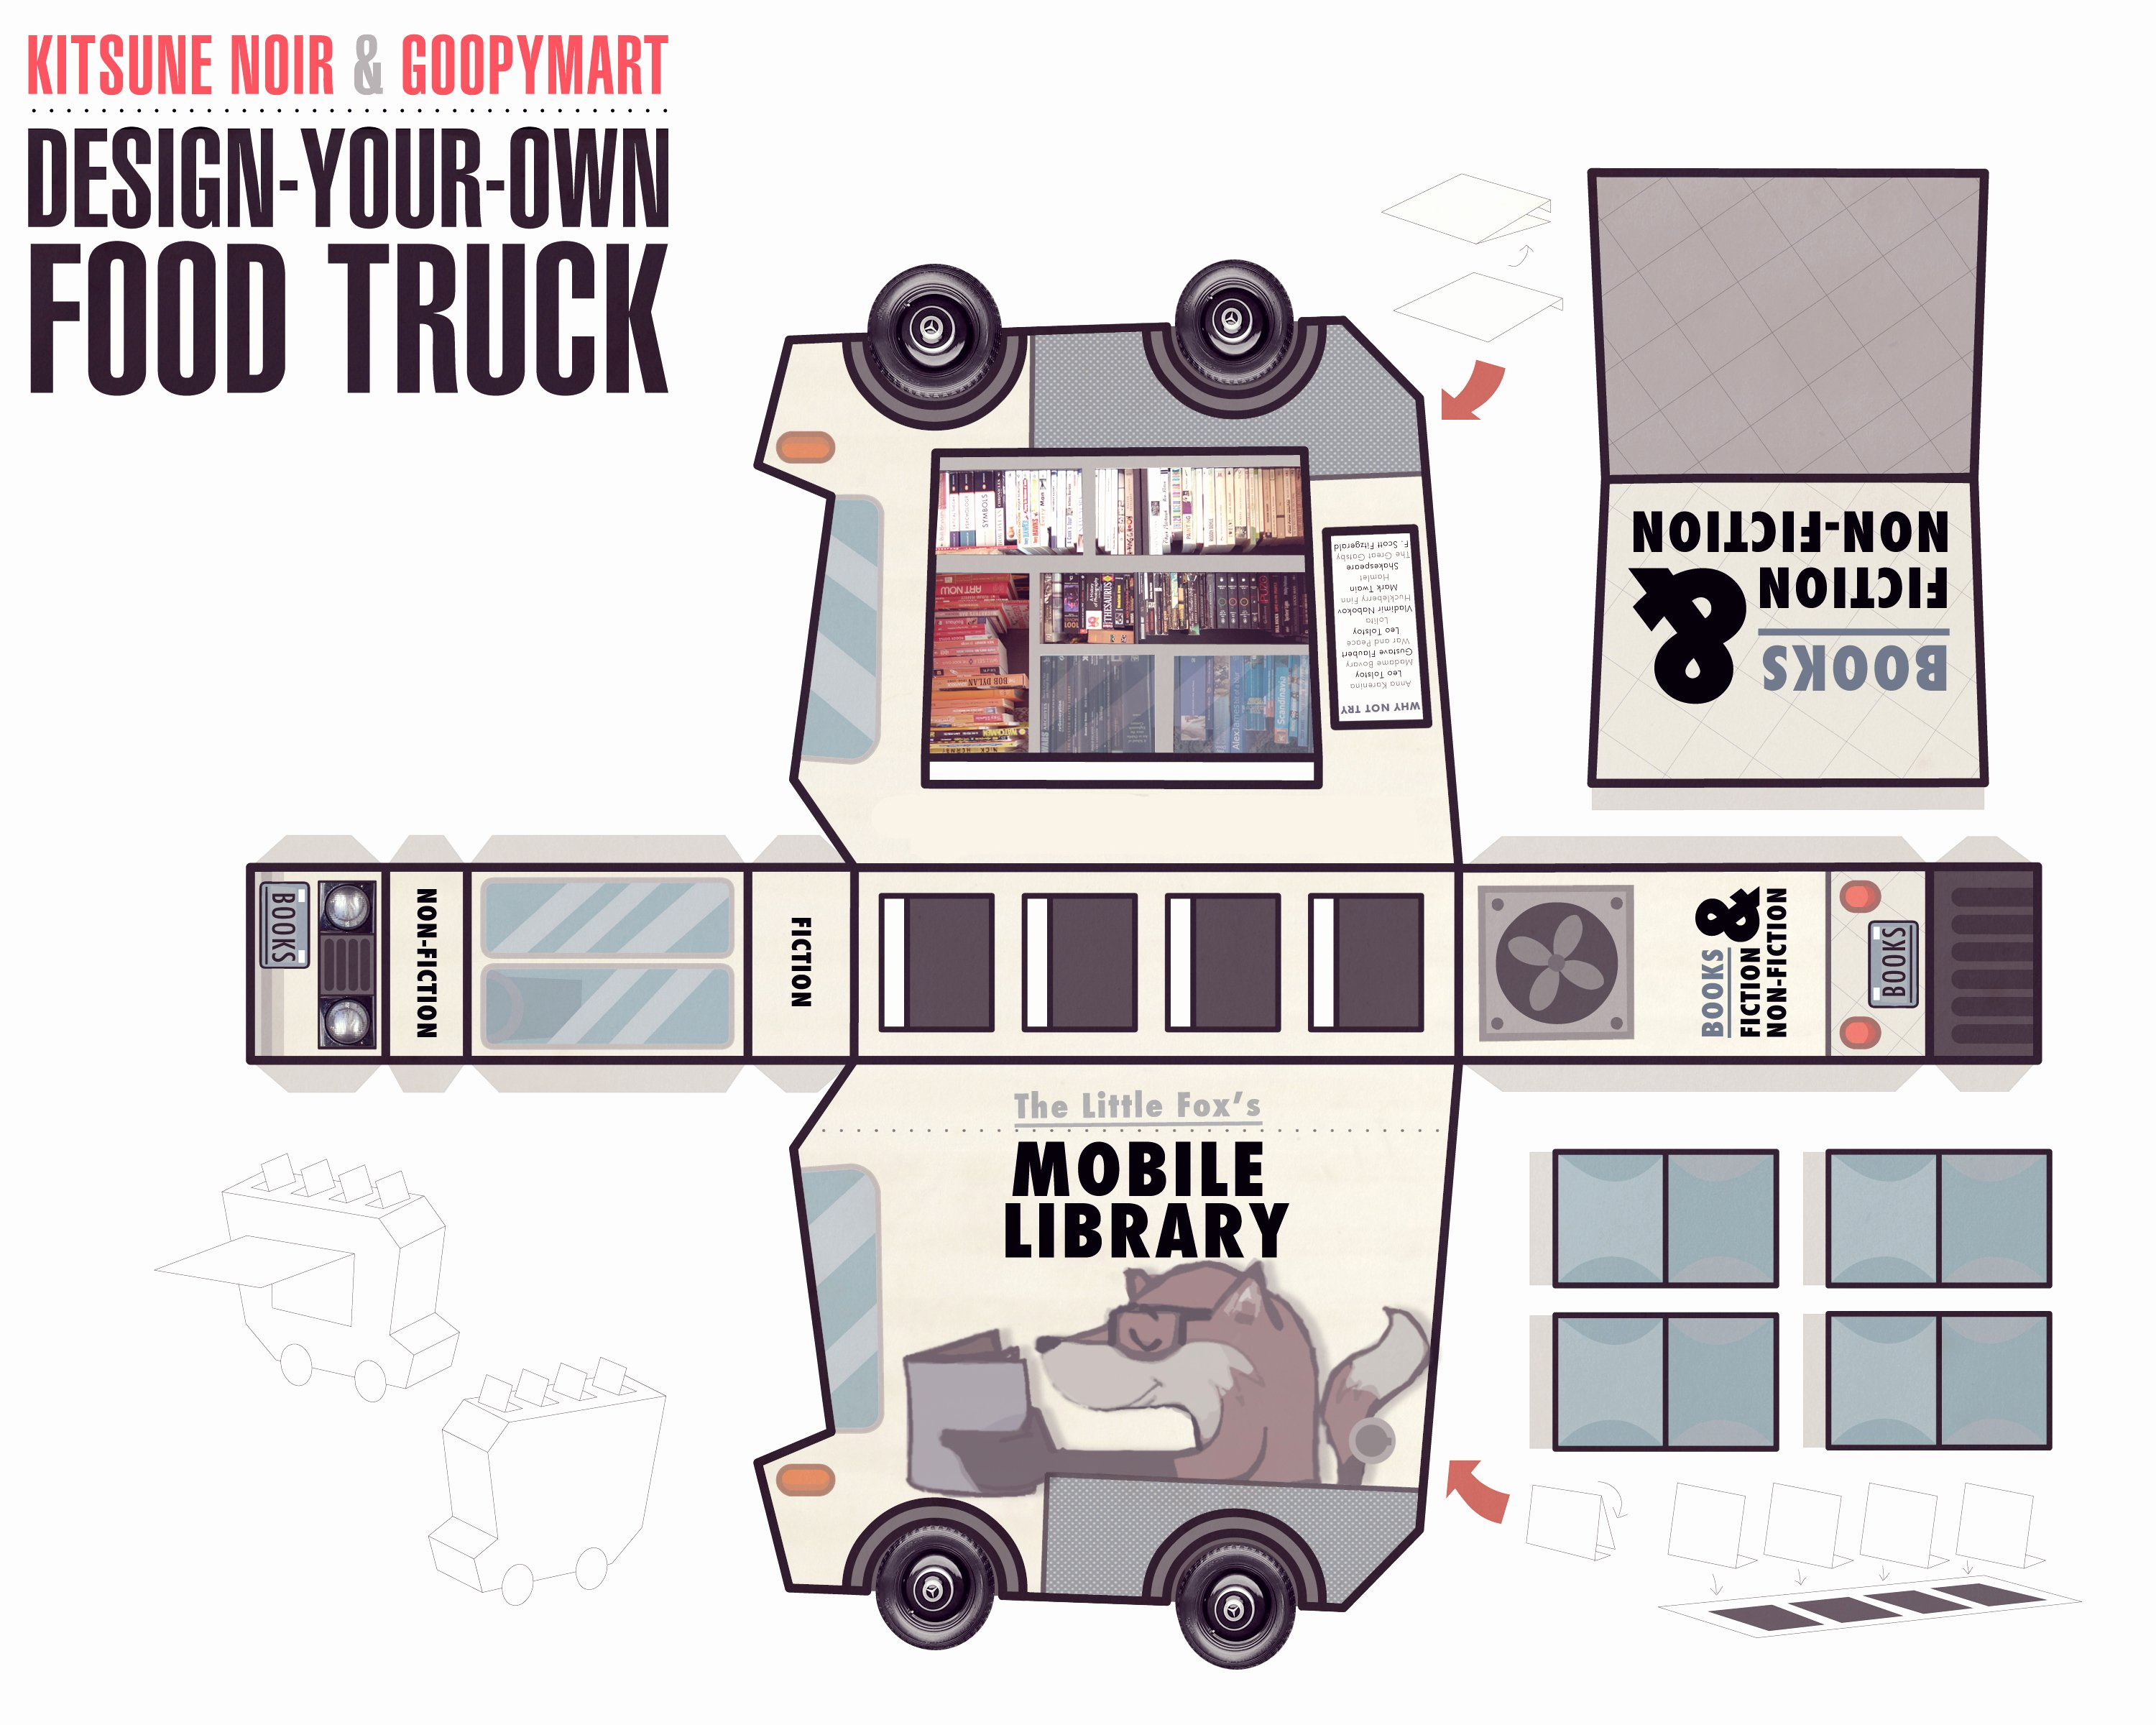 Food Truck Design Template Elegant Kitsune Noir & Goopymart Food Truck Winners the Fox is Black